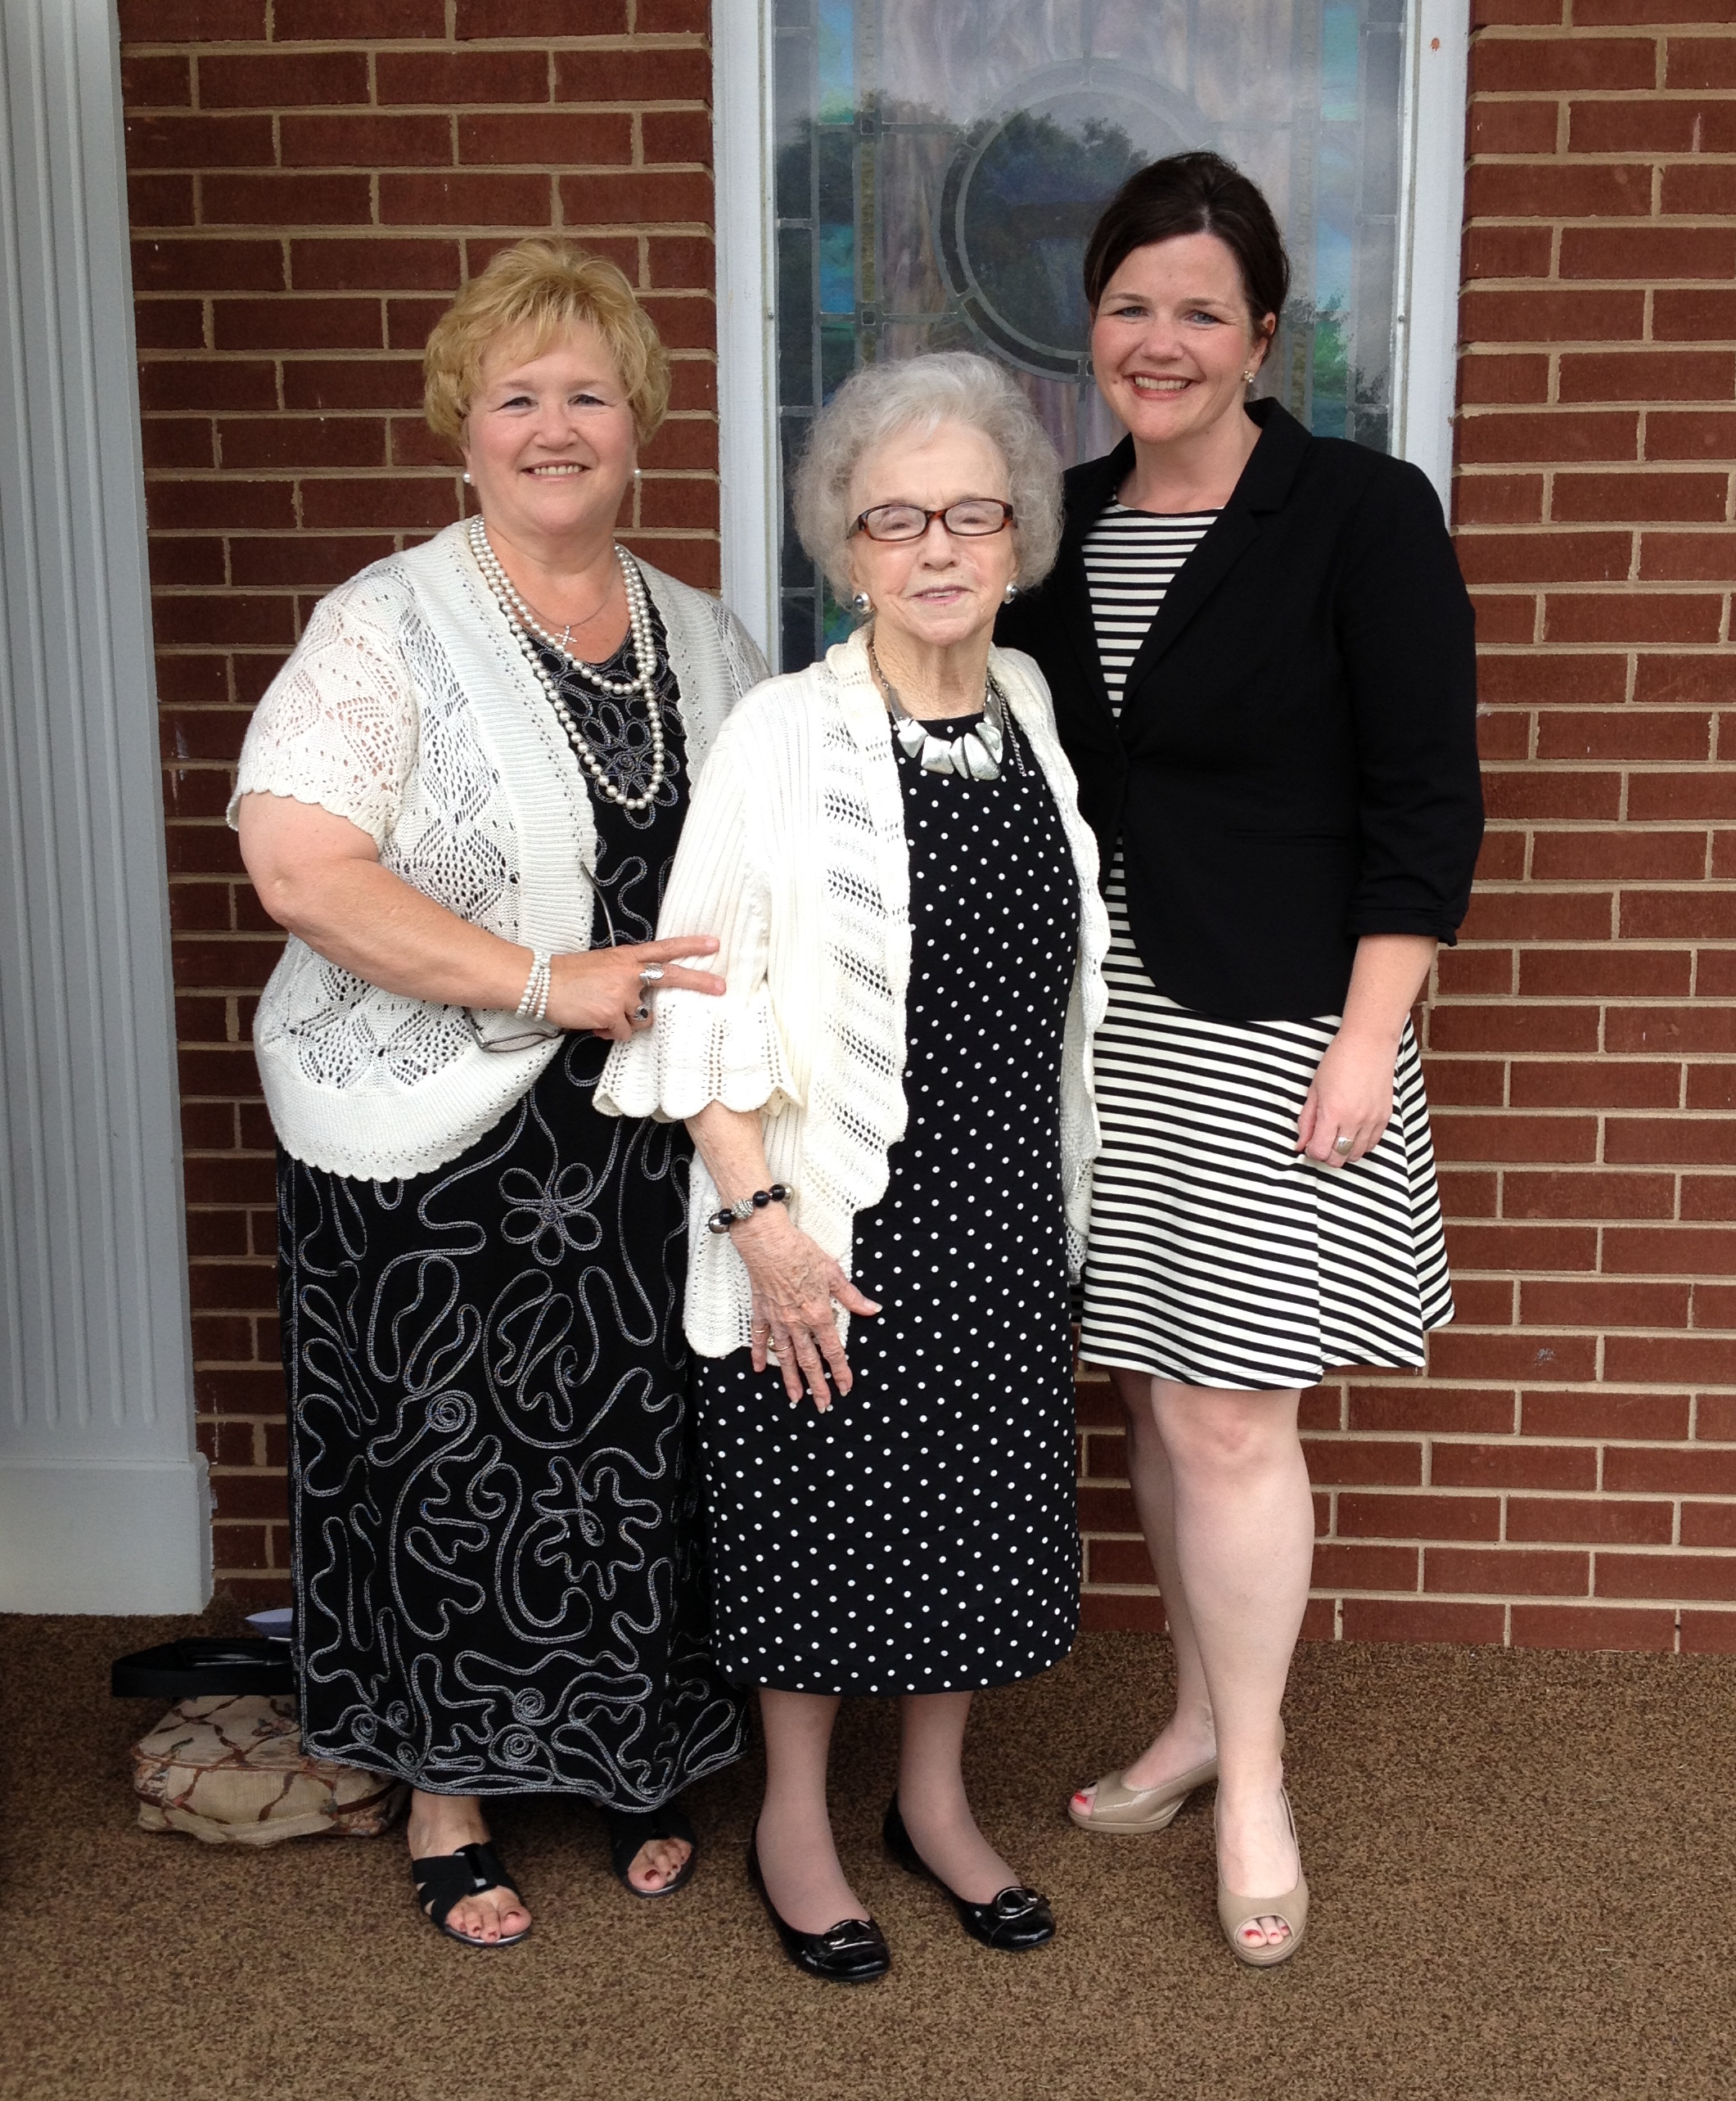 Deanna celebrating Mother's Day with her Mom and 86 year-old grandmother,Nanny Turner. Iron Station, NC - 2015